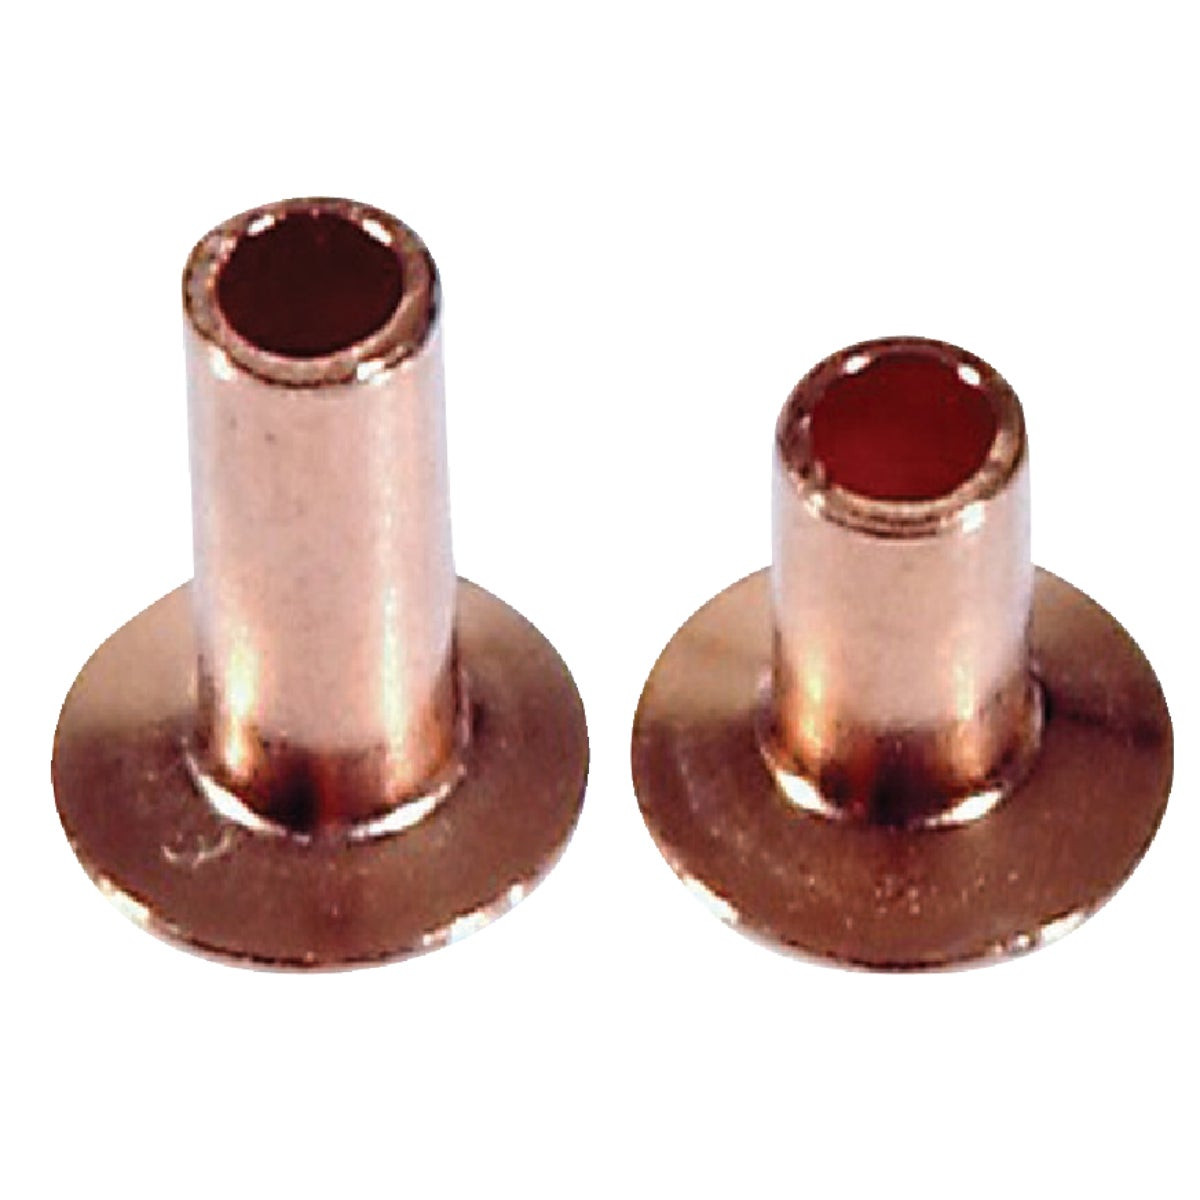 ASSORTED TUBULAR RIVETS - 8007 by Hillman Fastener